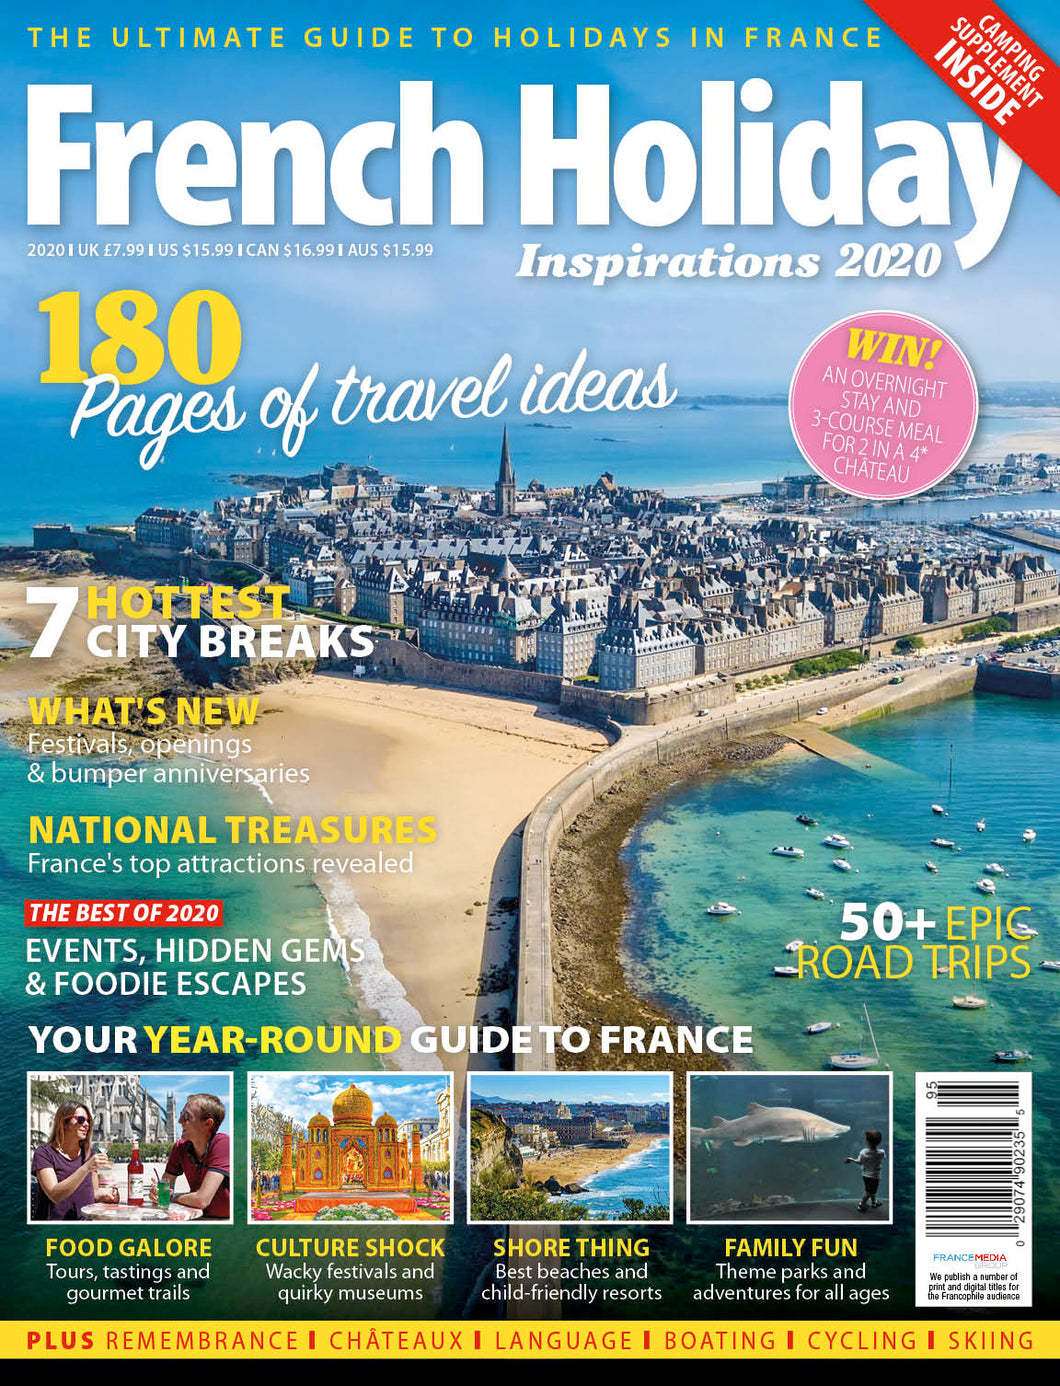 French Holiday Inspirations 2020